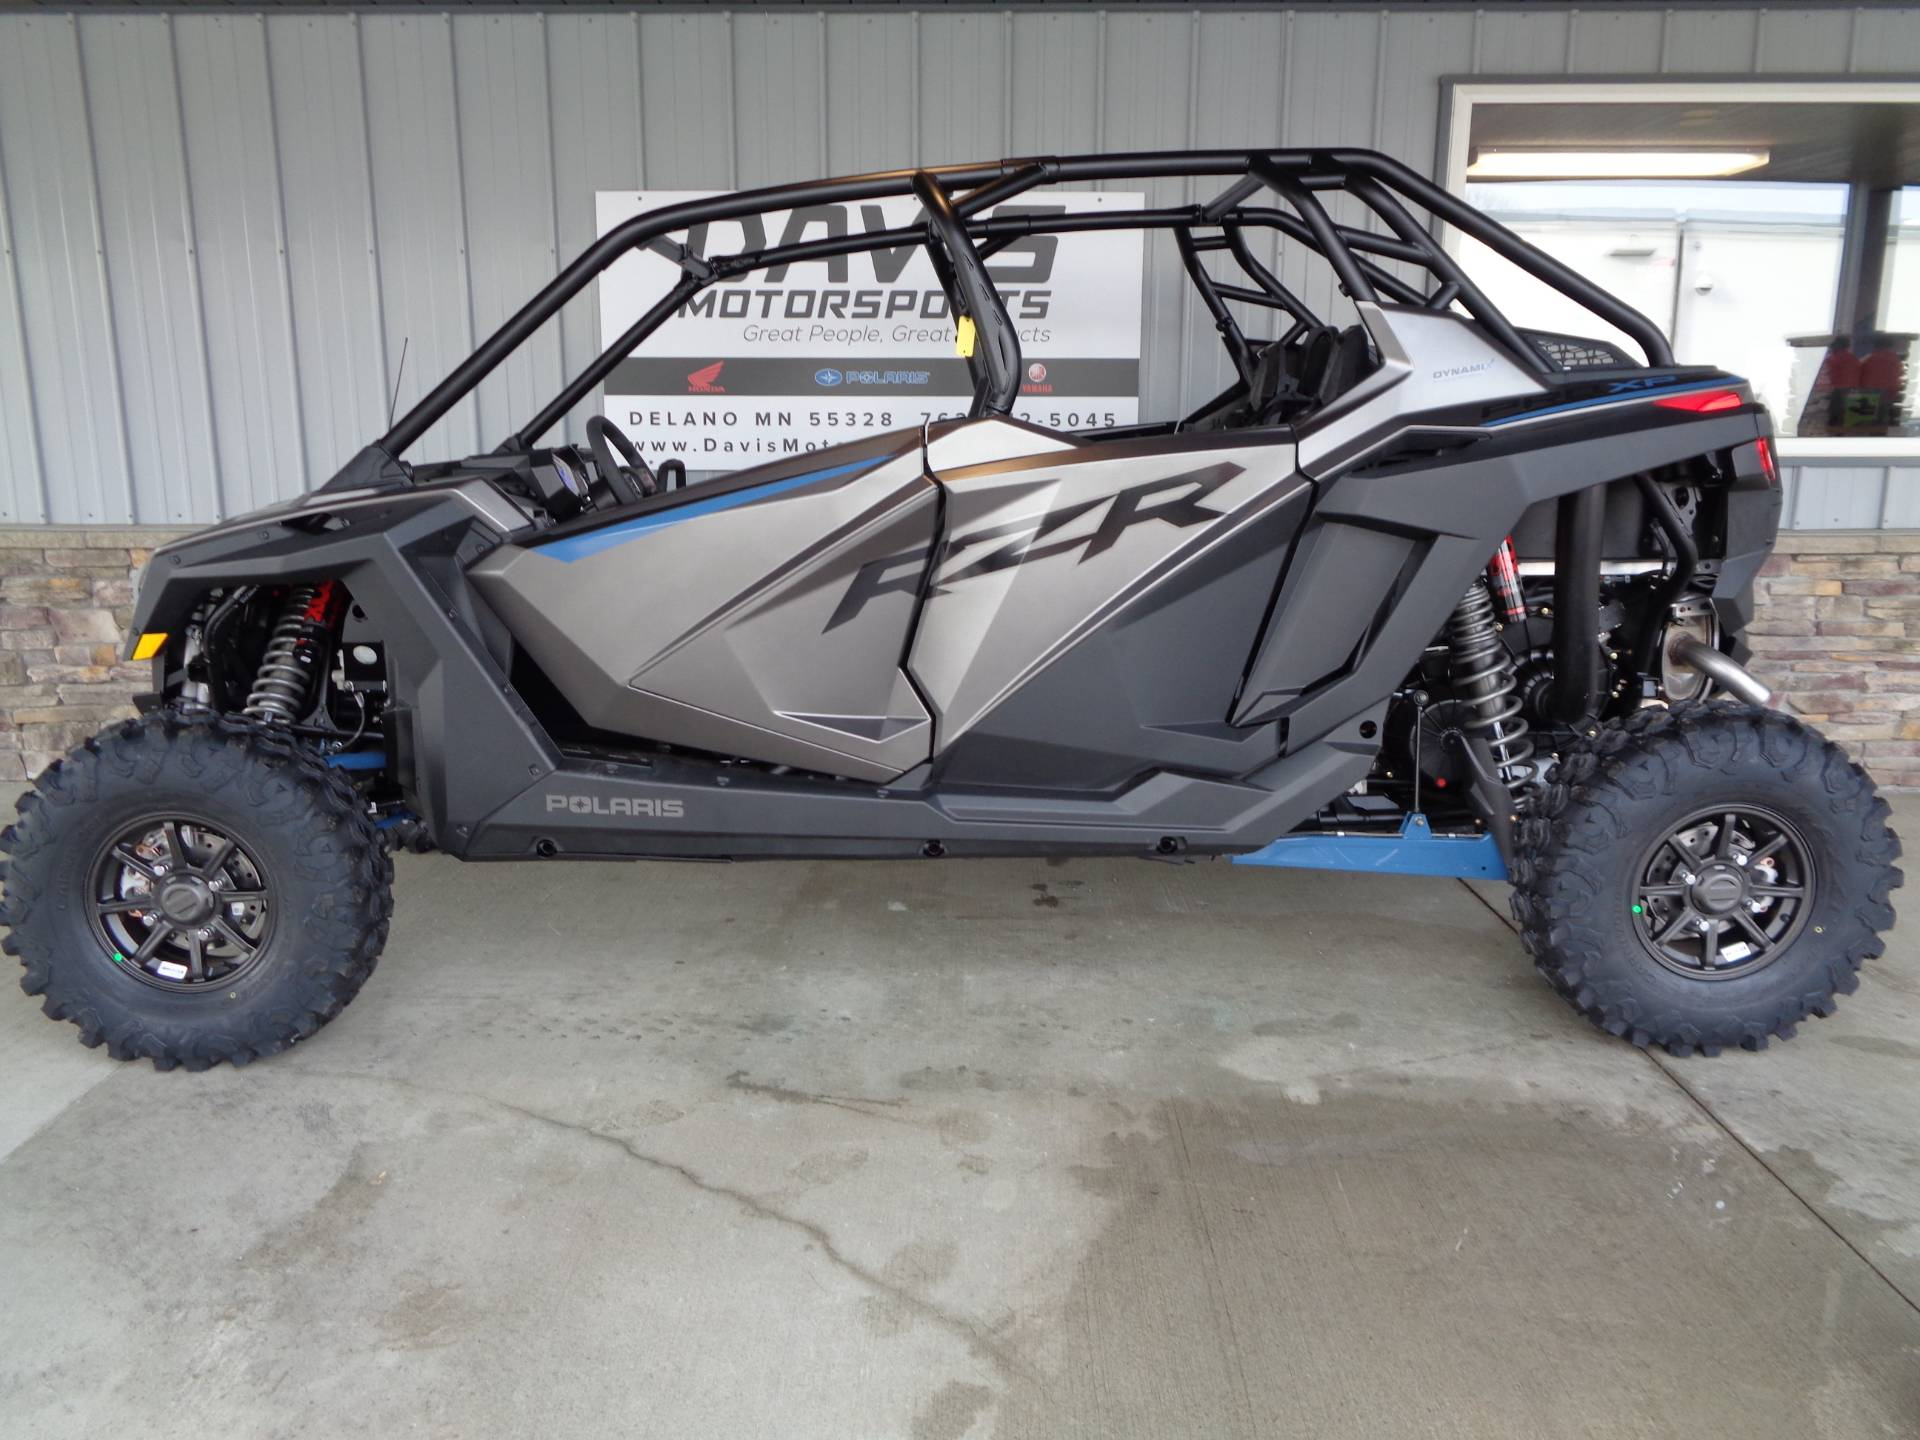 2021 Polaris RZR PRO XP 4 Ultimate in Delano, Minnesota - Photo 2